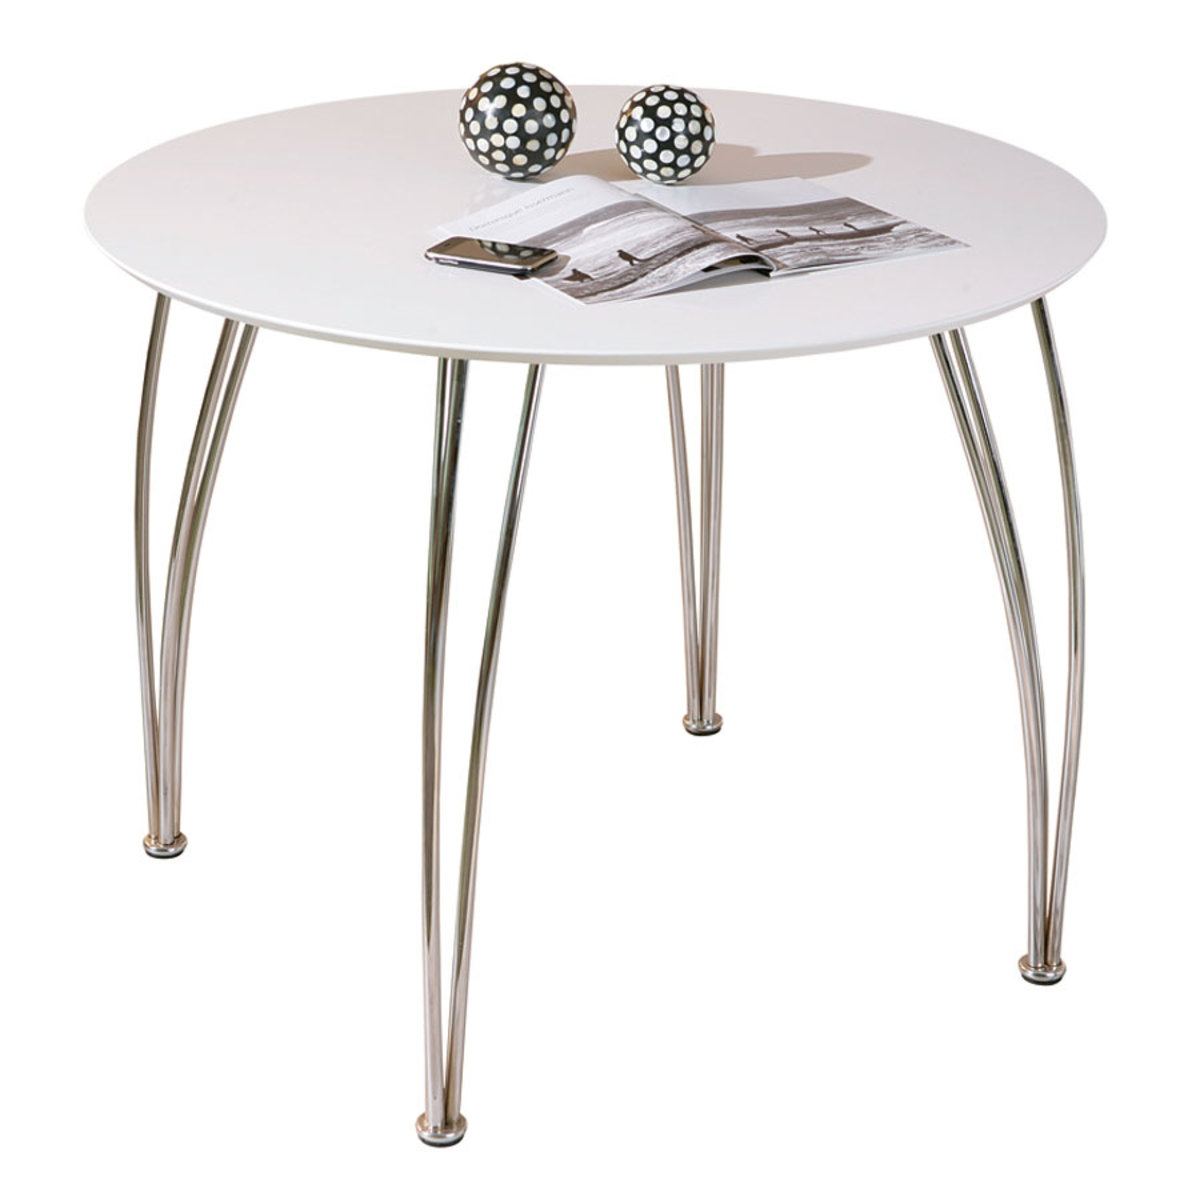 Table ronde laqu e blanche cellini - Table de cuisine ronde blanche ...